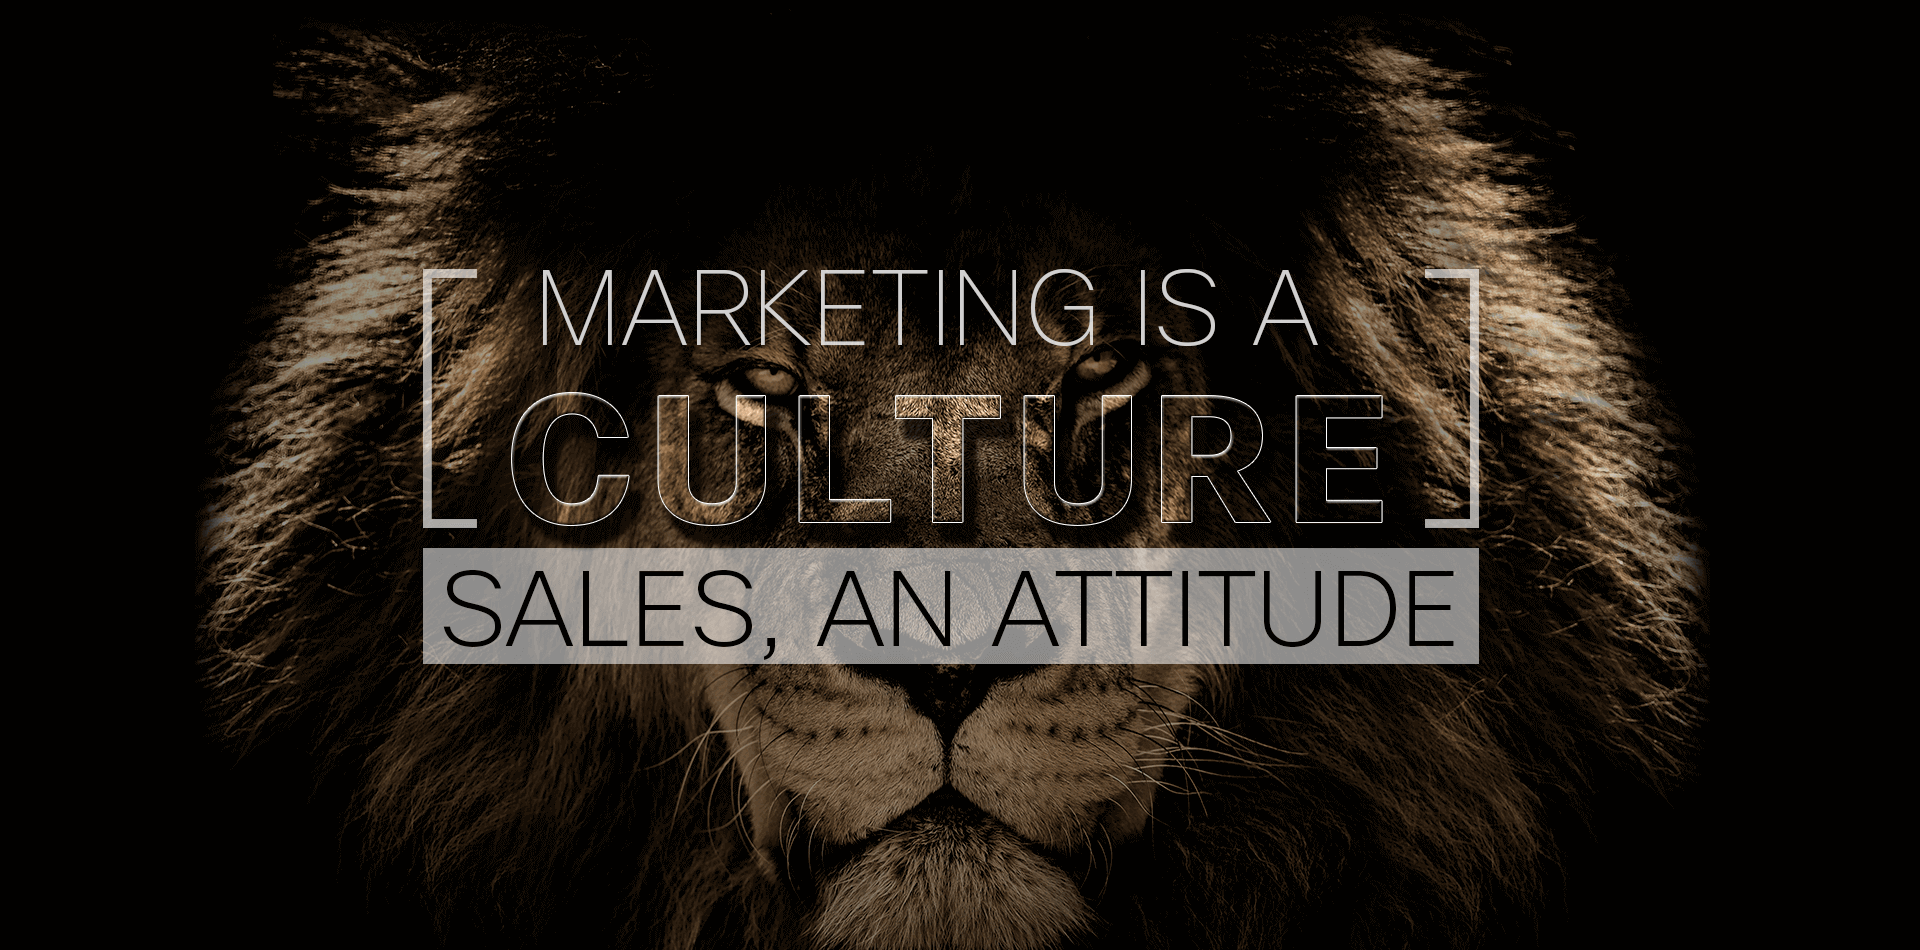 Marketing is a culture sales, an attitude.